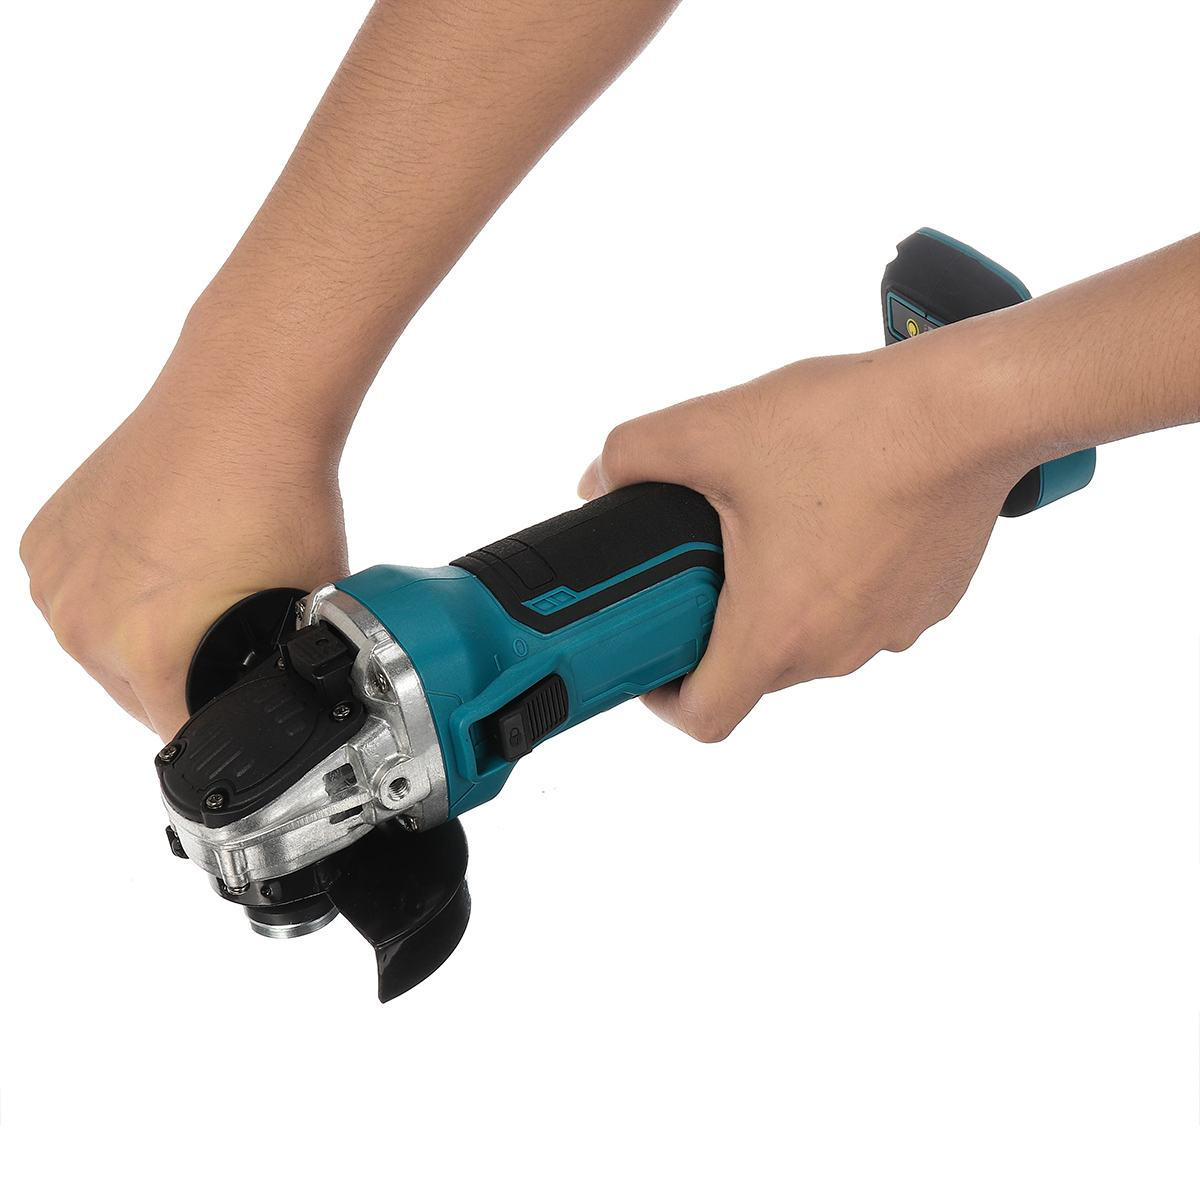 Tools : 18V 125 100mm Brushless Cordless Impact Angle Grinder Variable Speed For Makita Battery DIY Power Tool Cutting Machine Polisher